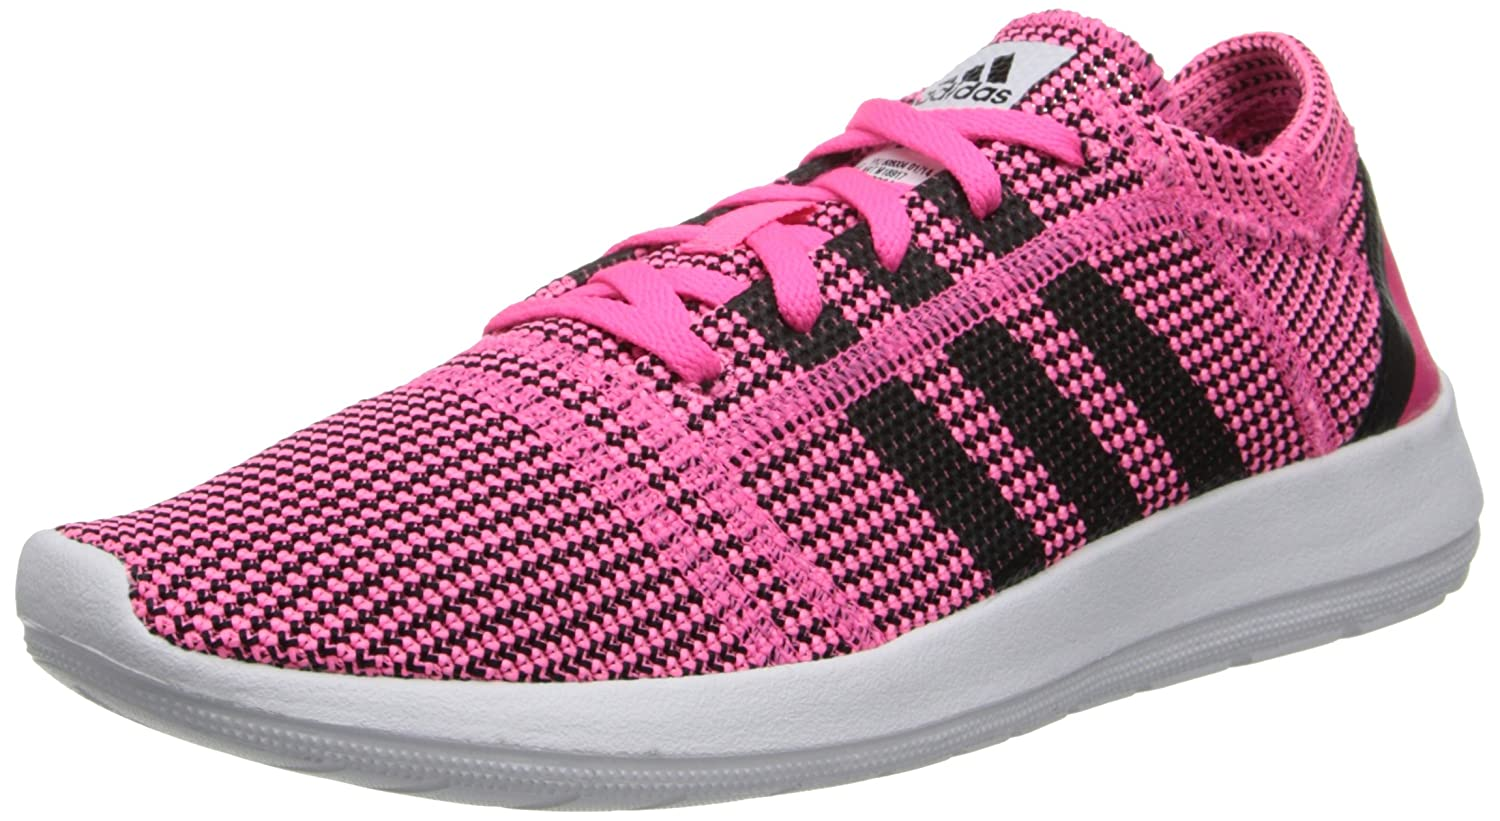 adidas Performance Women's Element Refine Tricot W Running Shoe подушки classic by t подушка антистресс 70х70